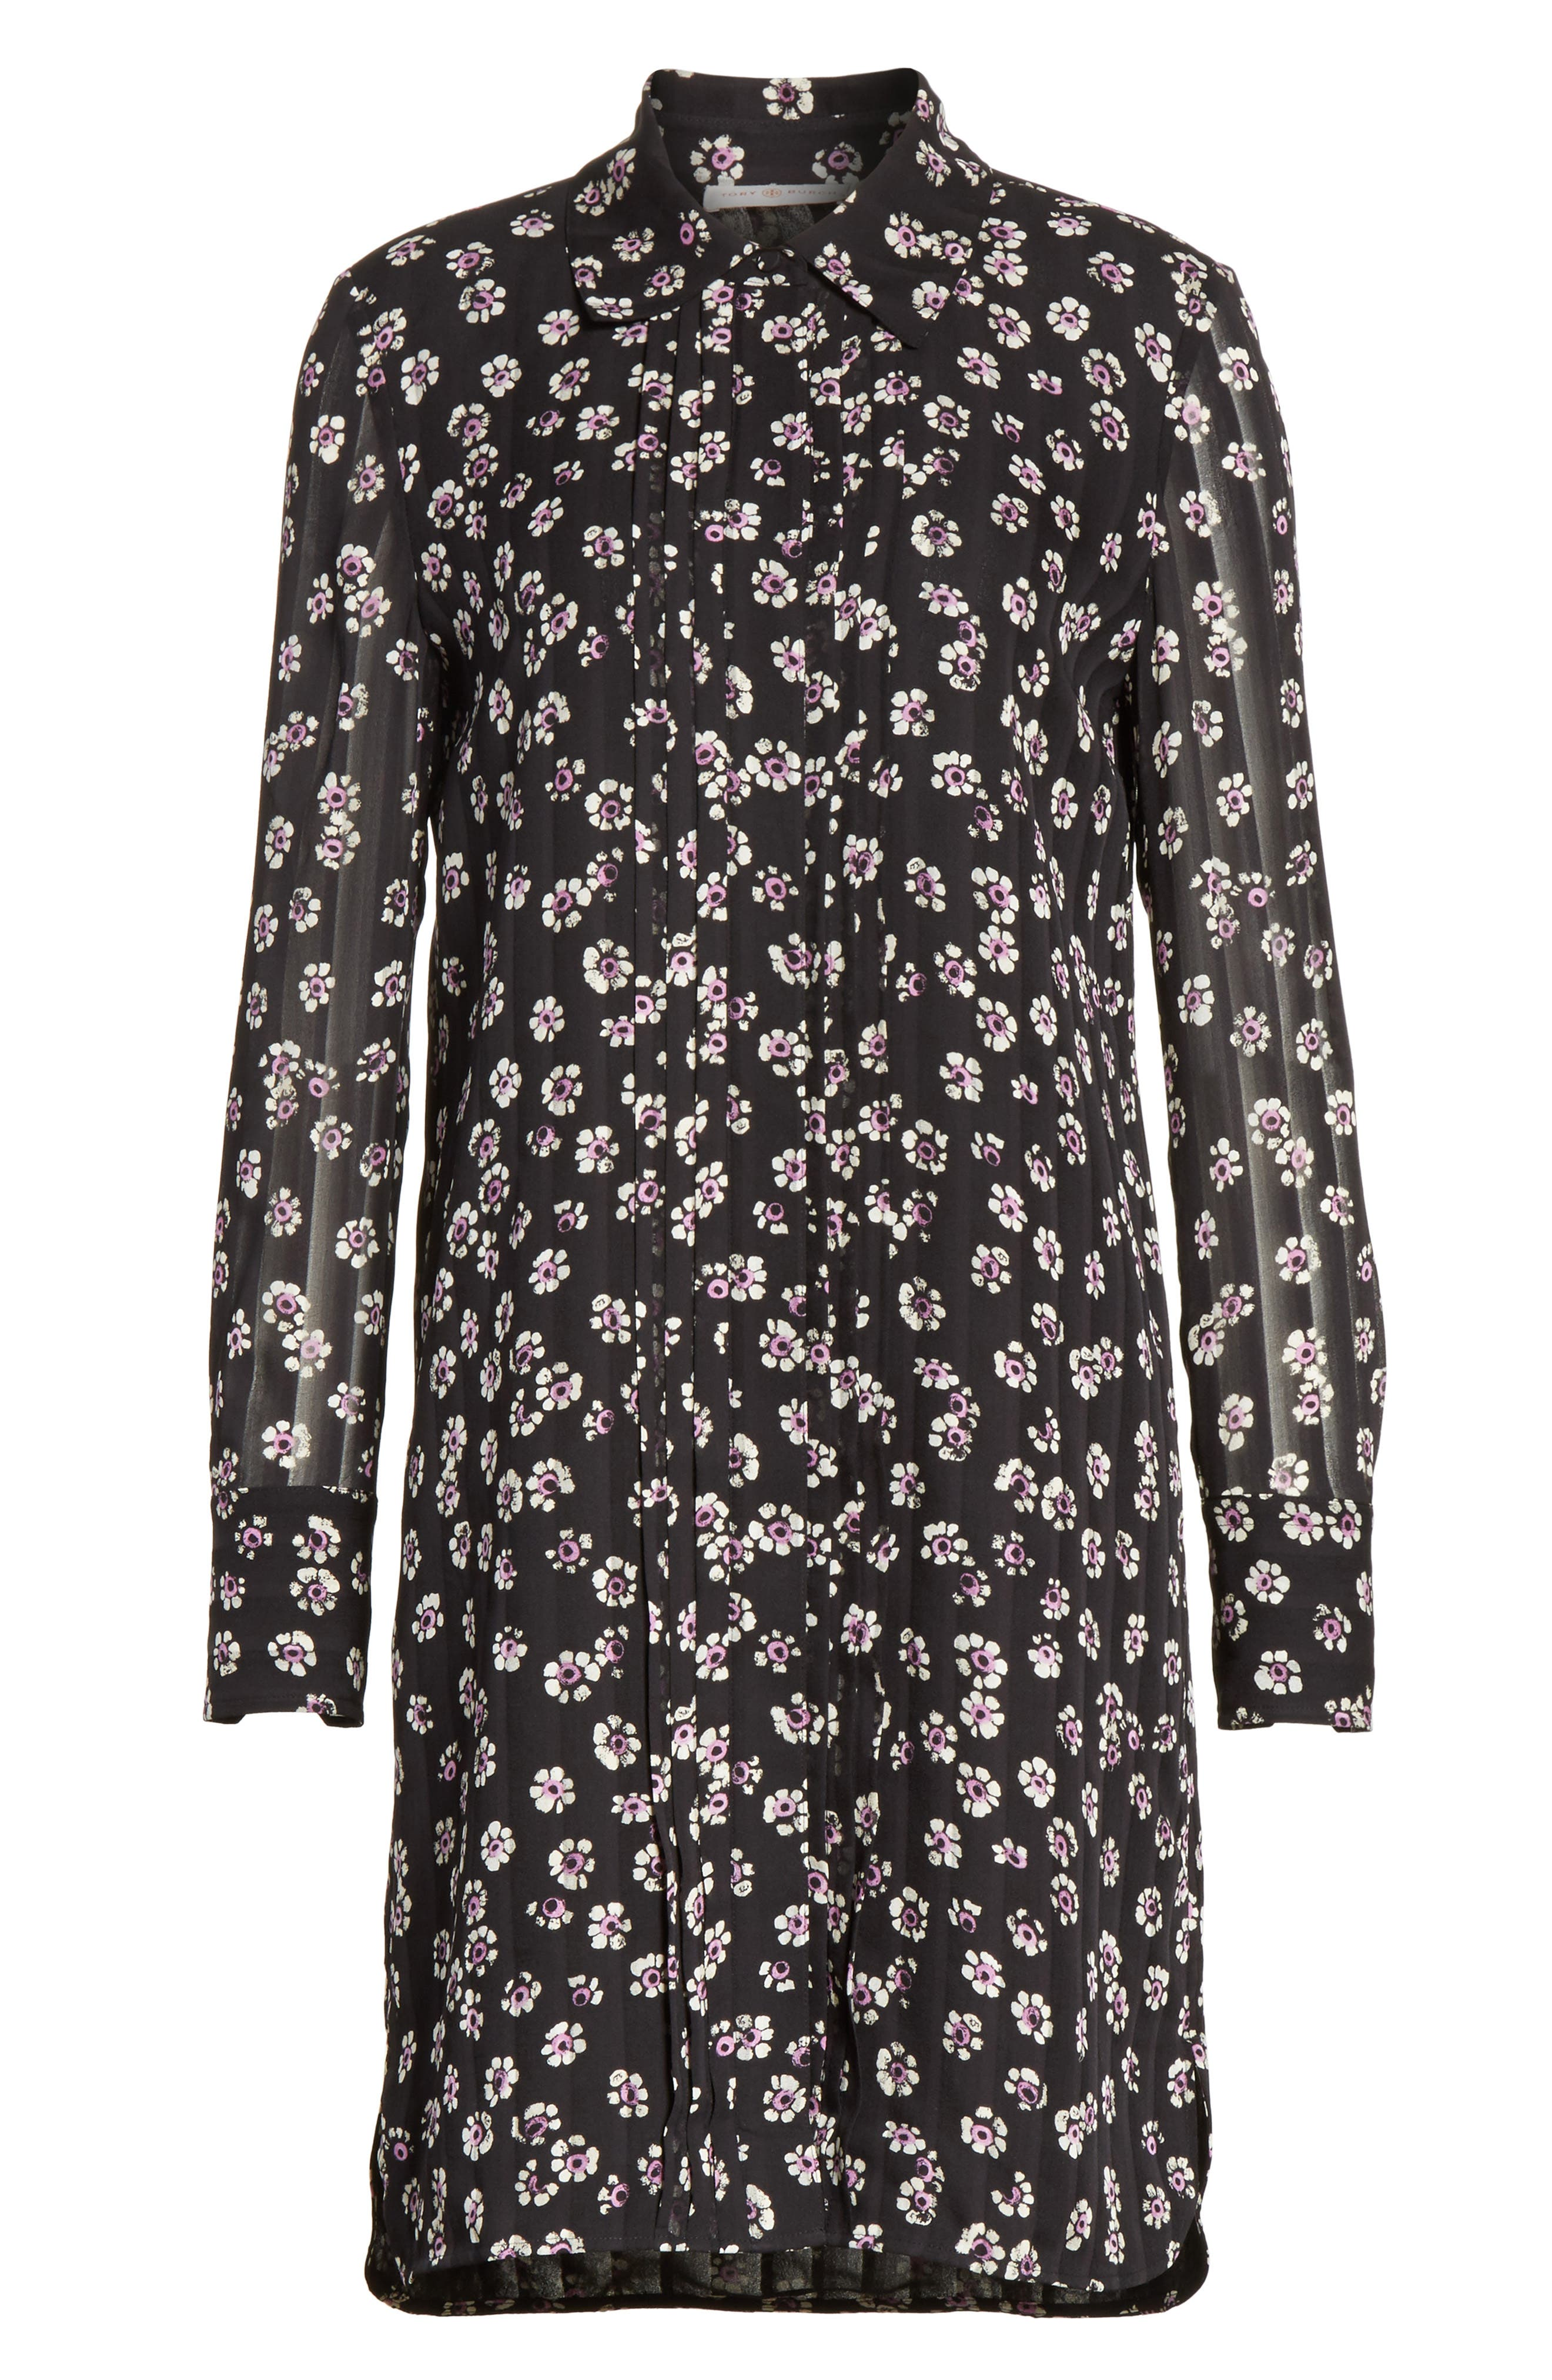 Avery Floral Silk Shirtdress,                             Alternate thumbnail 6, color,                             Black Stamped Floral